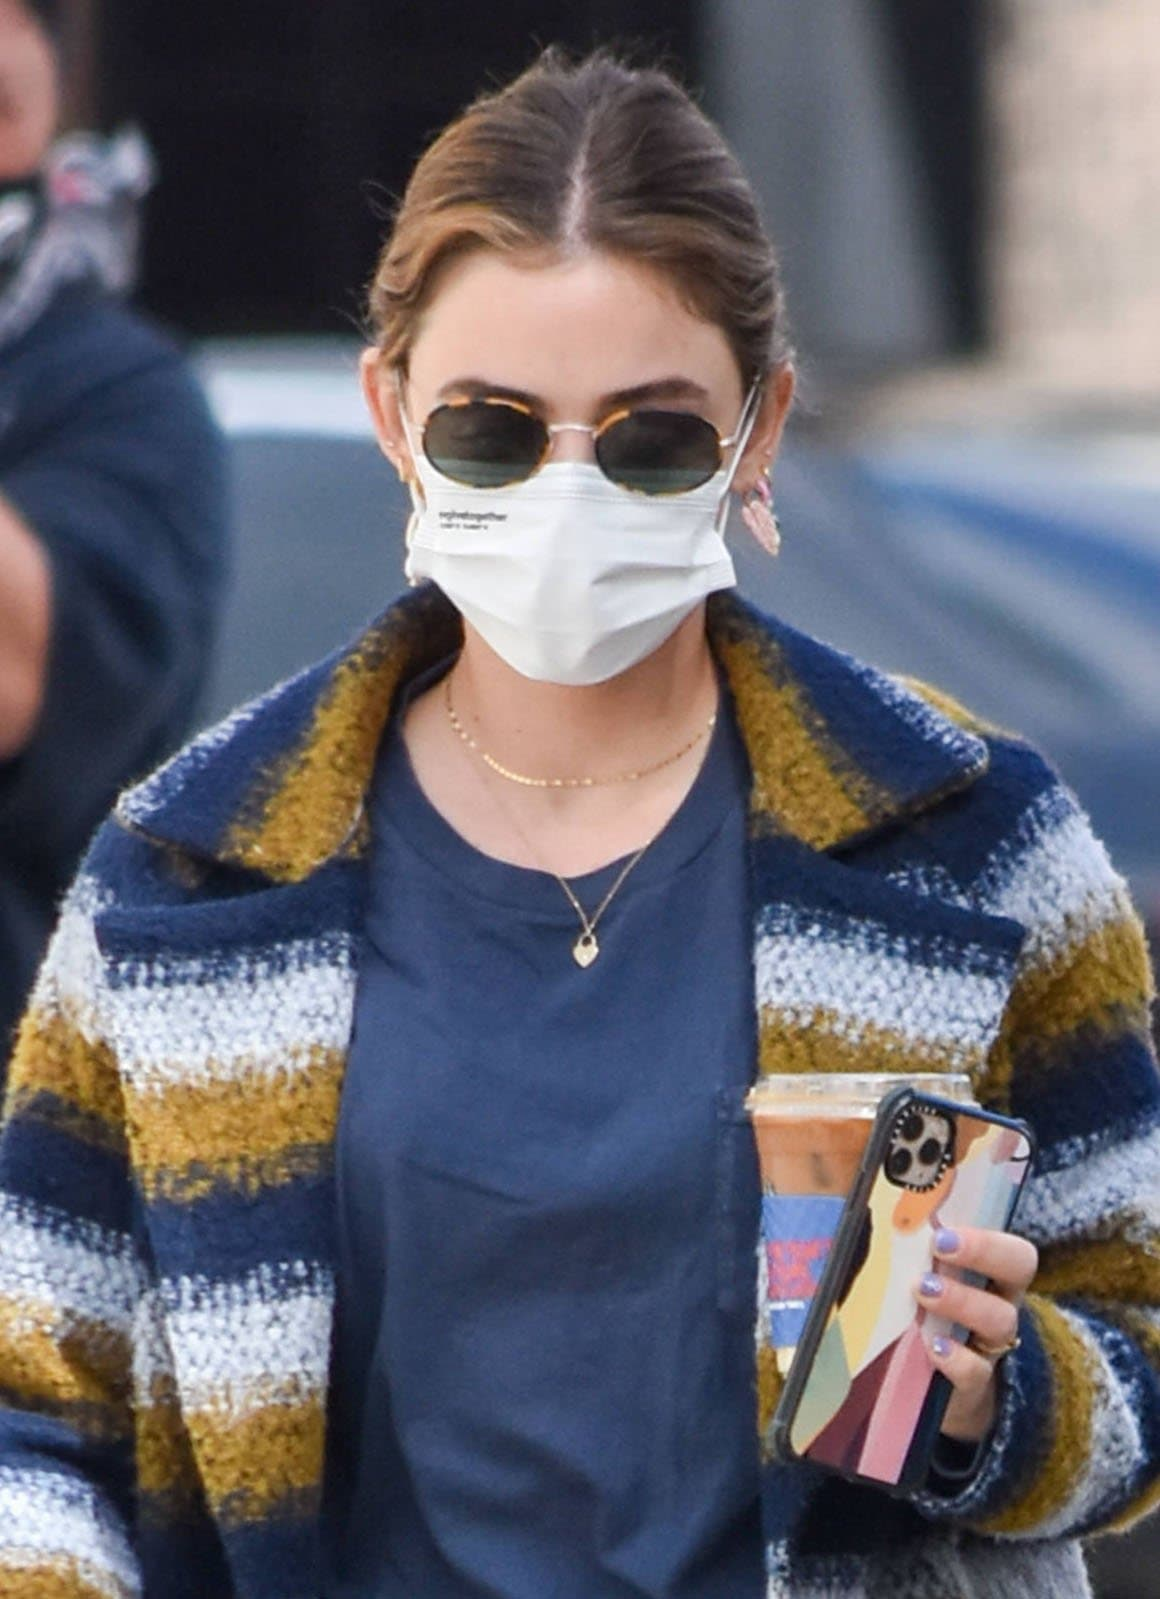 Lucy Hale accessorizes with Uncommon James earrings and stays safe with EvolveTogether face mask